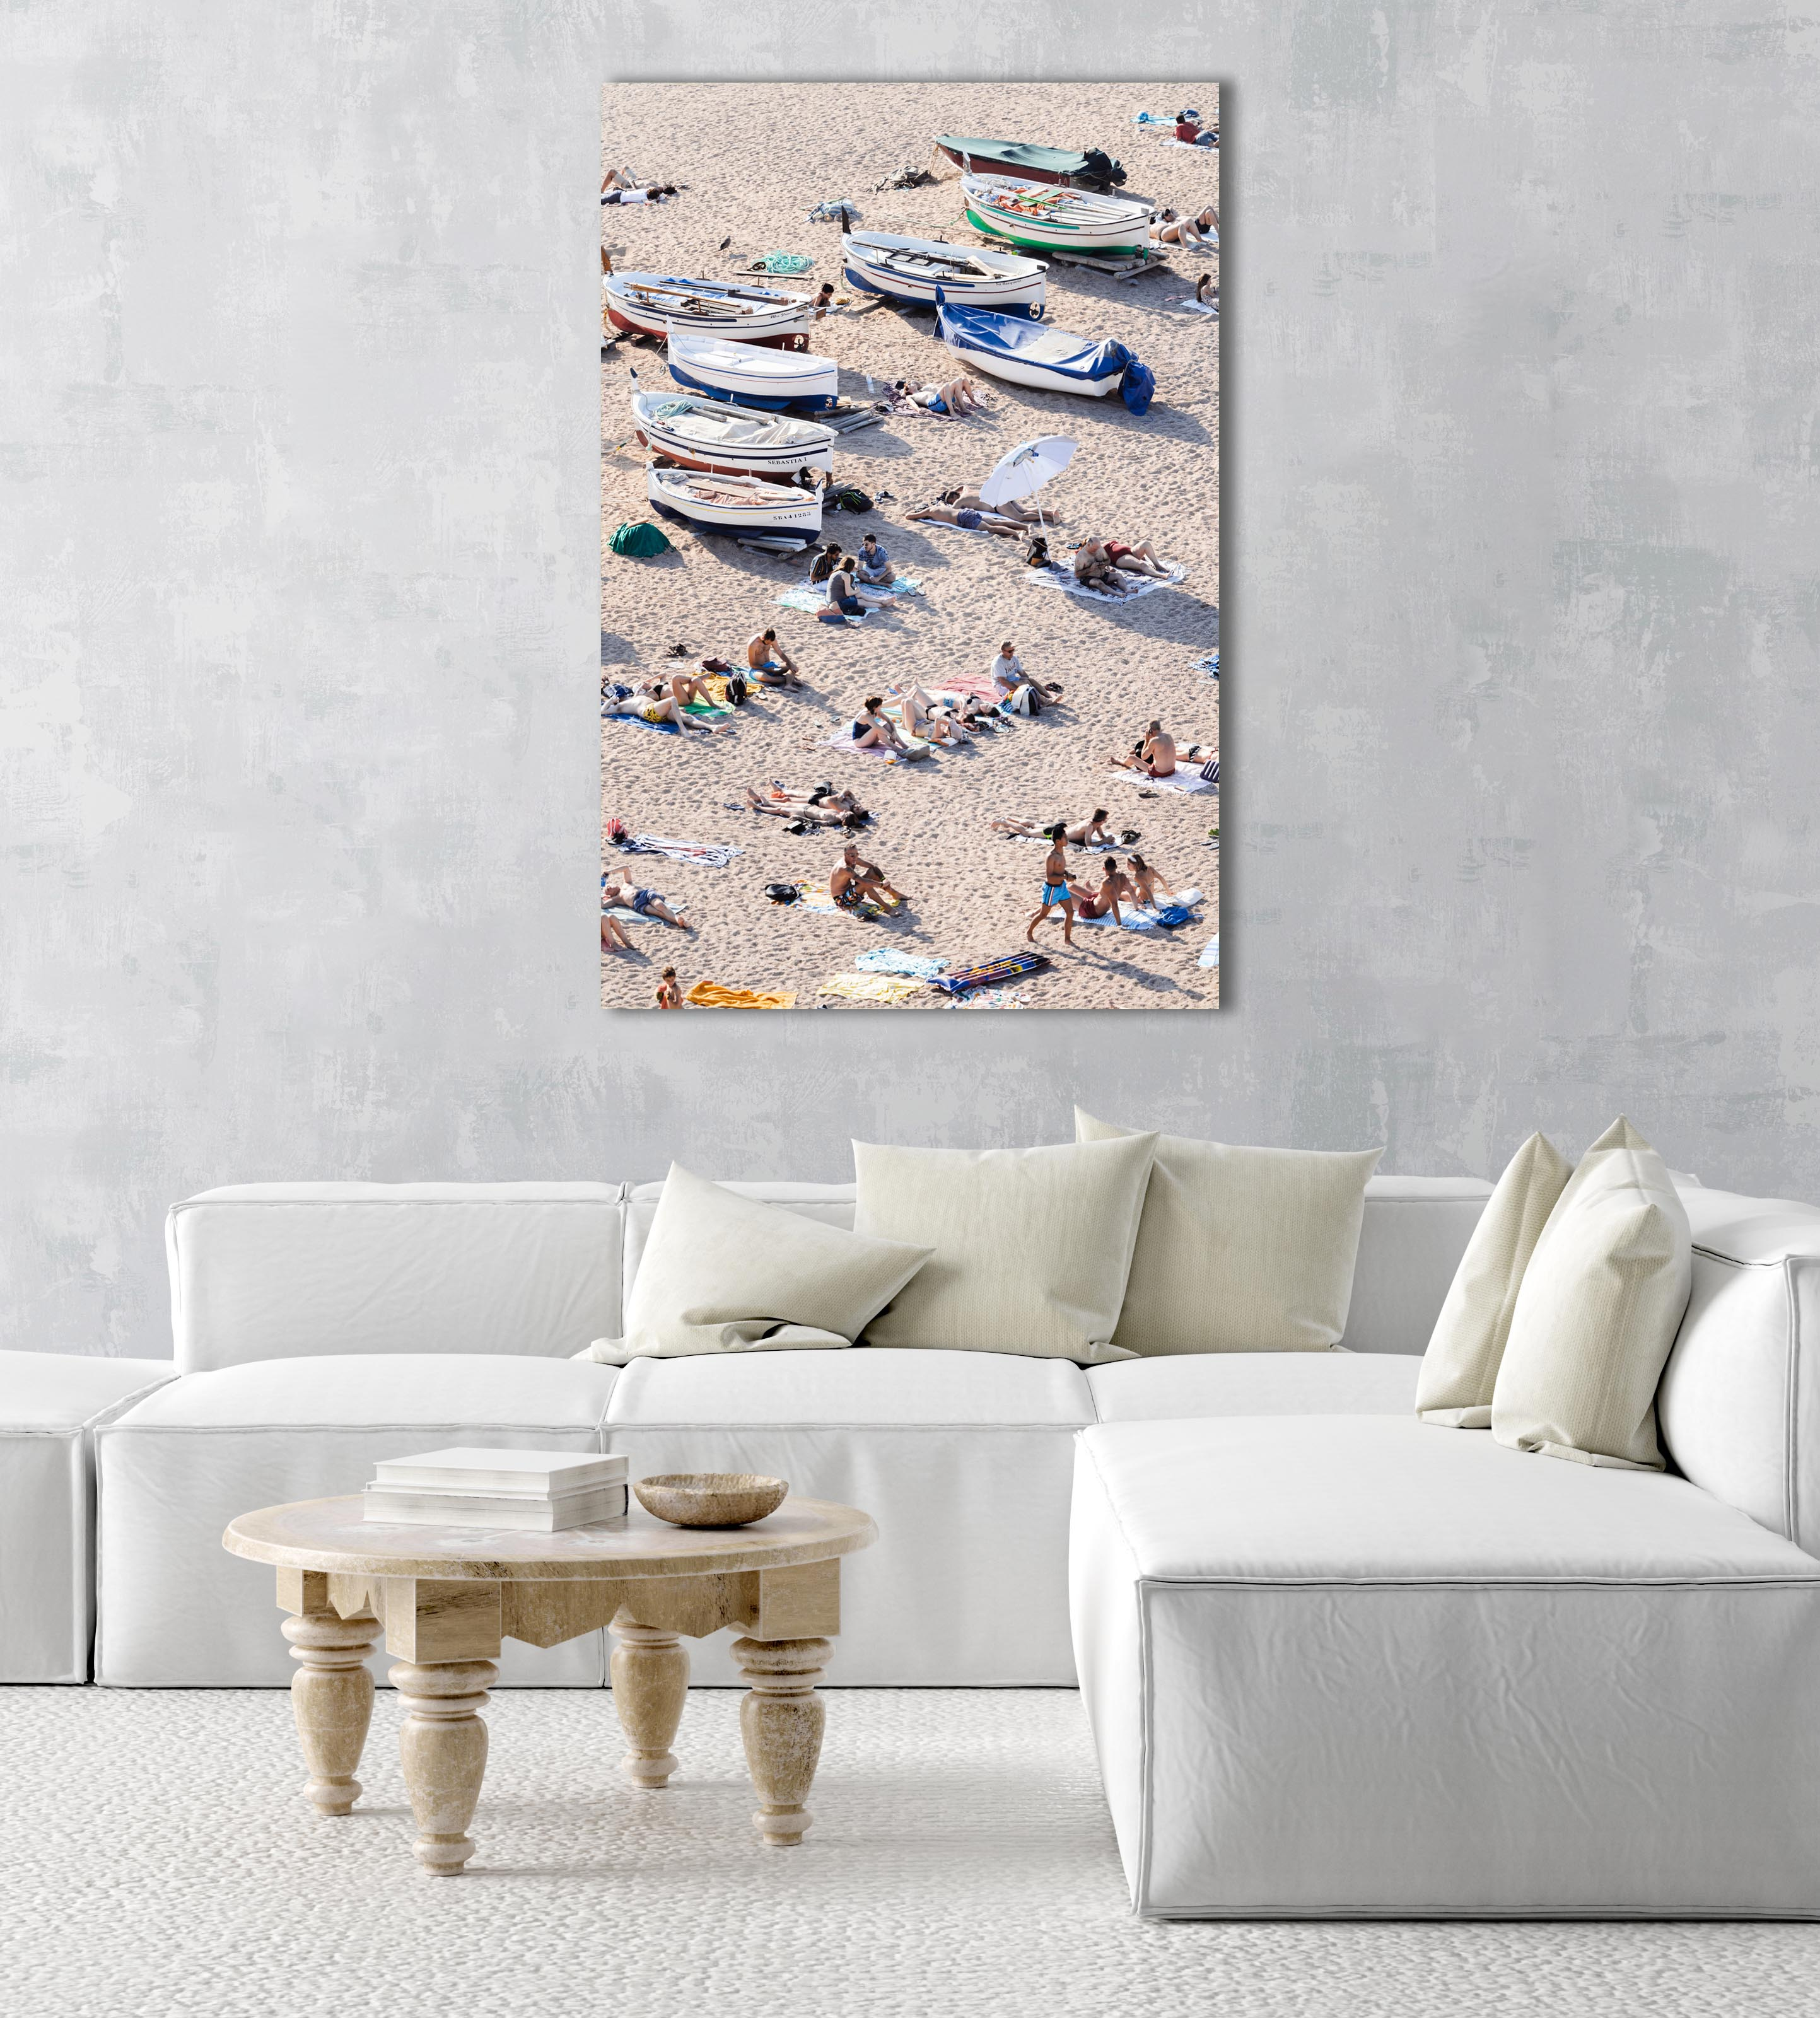 People lying on sand next to boats in an acrylic/perspex frame